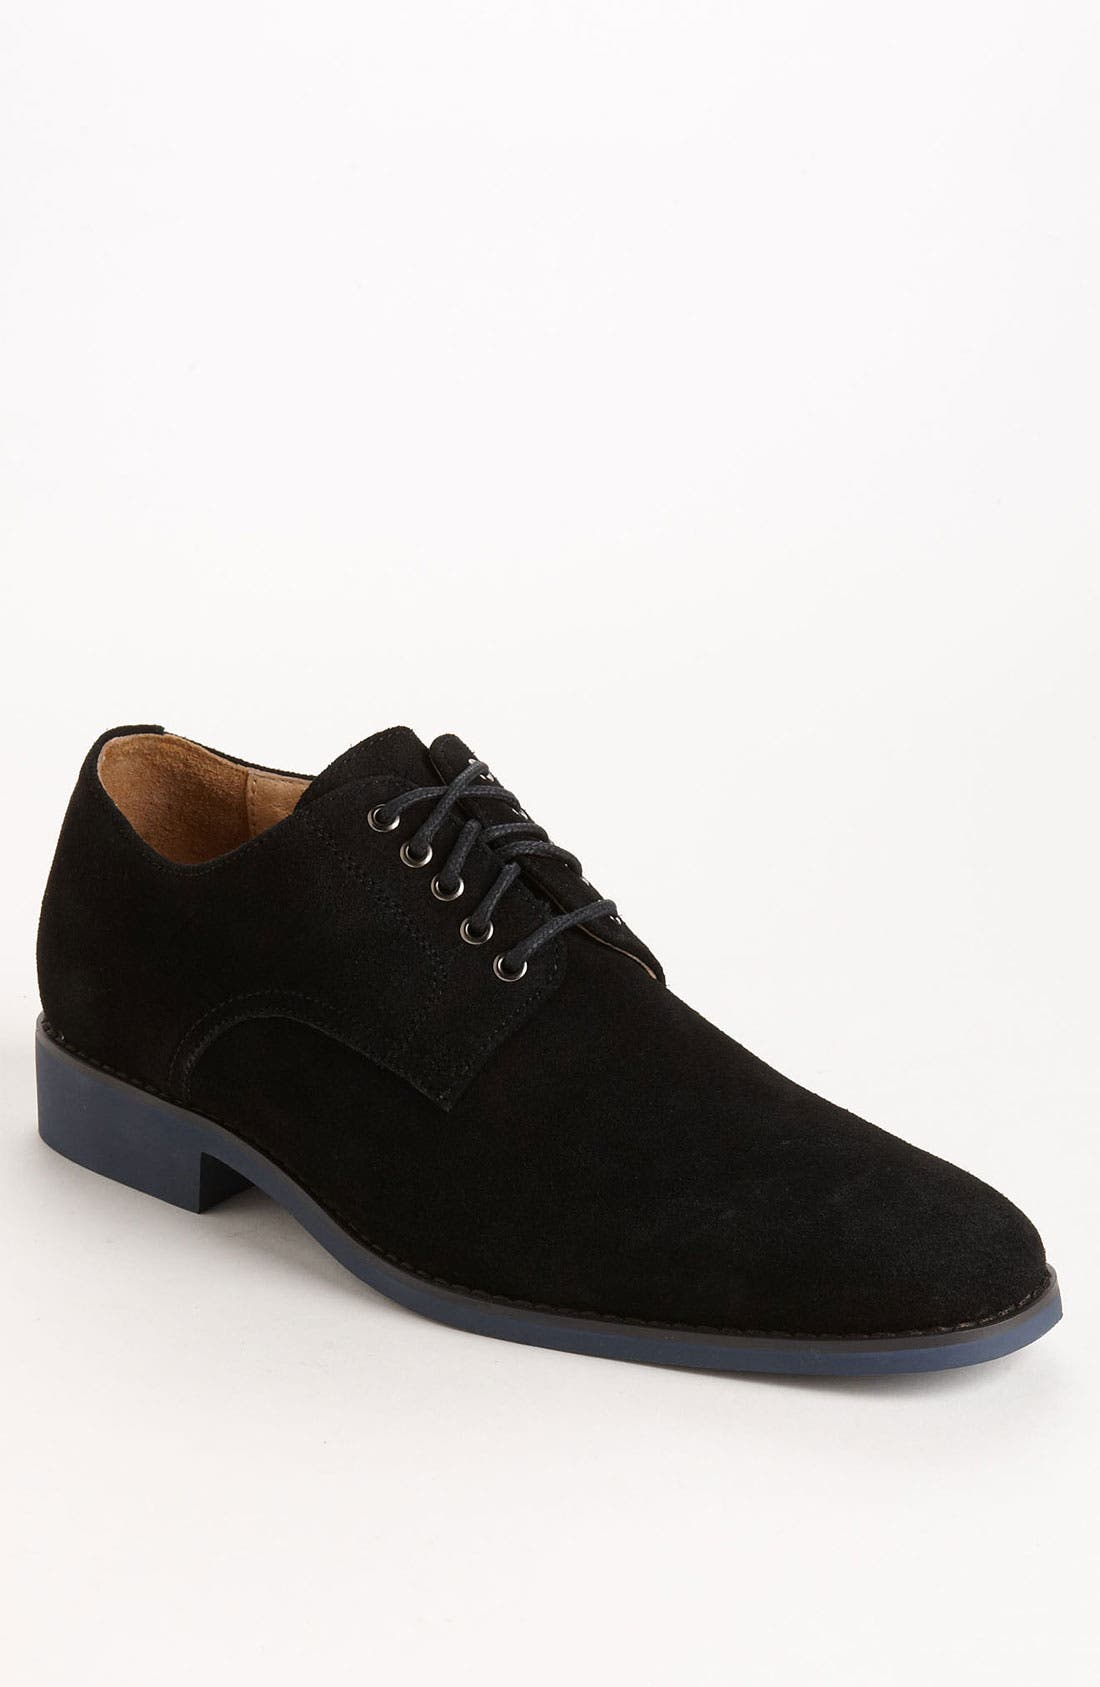 Main Image - JD Fisk 'Vincent' Suede Buck Shoe